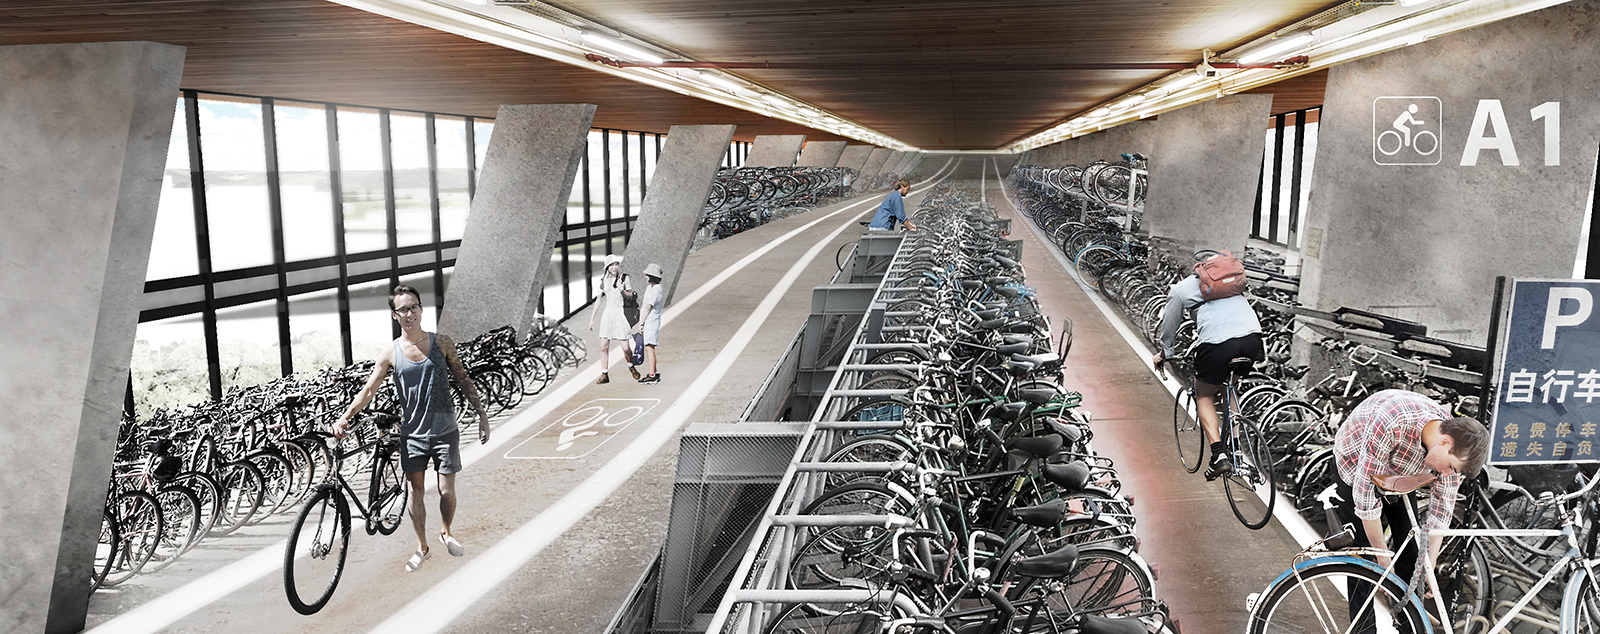 MJZ_Bike-Parking (1)